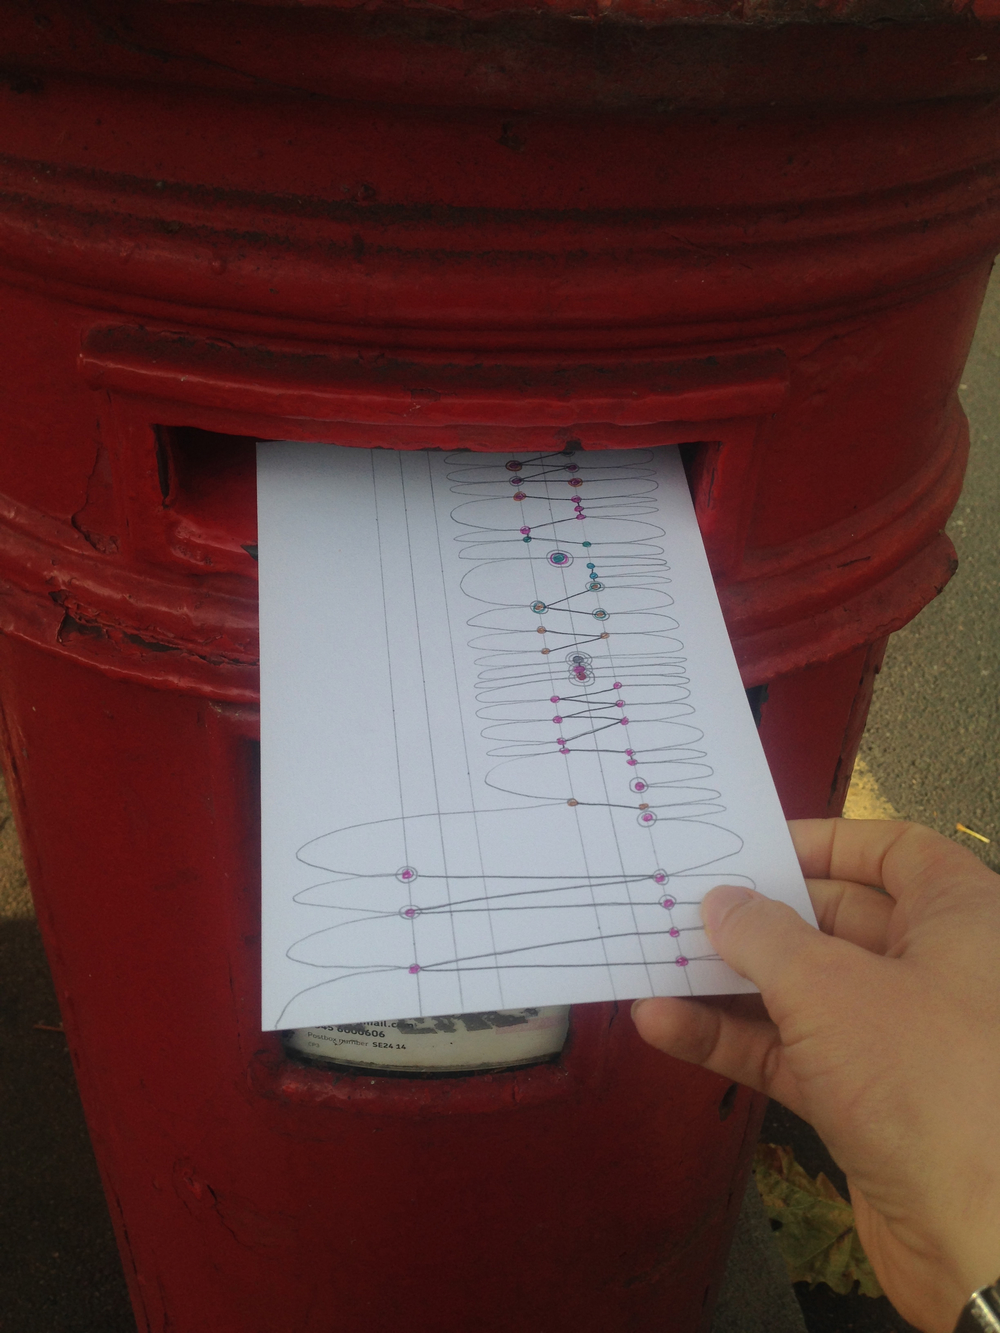 Greeting my friendly local London postbox once again...